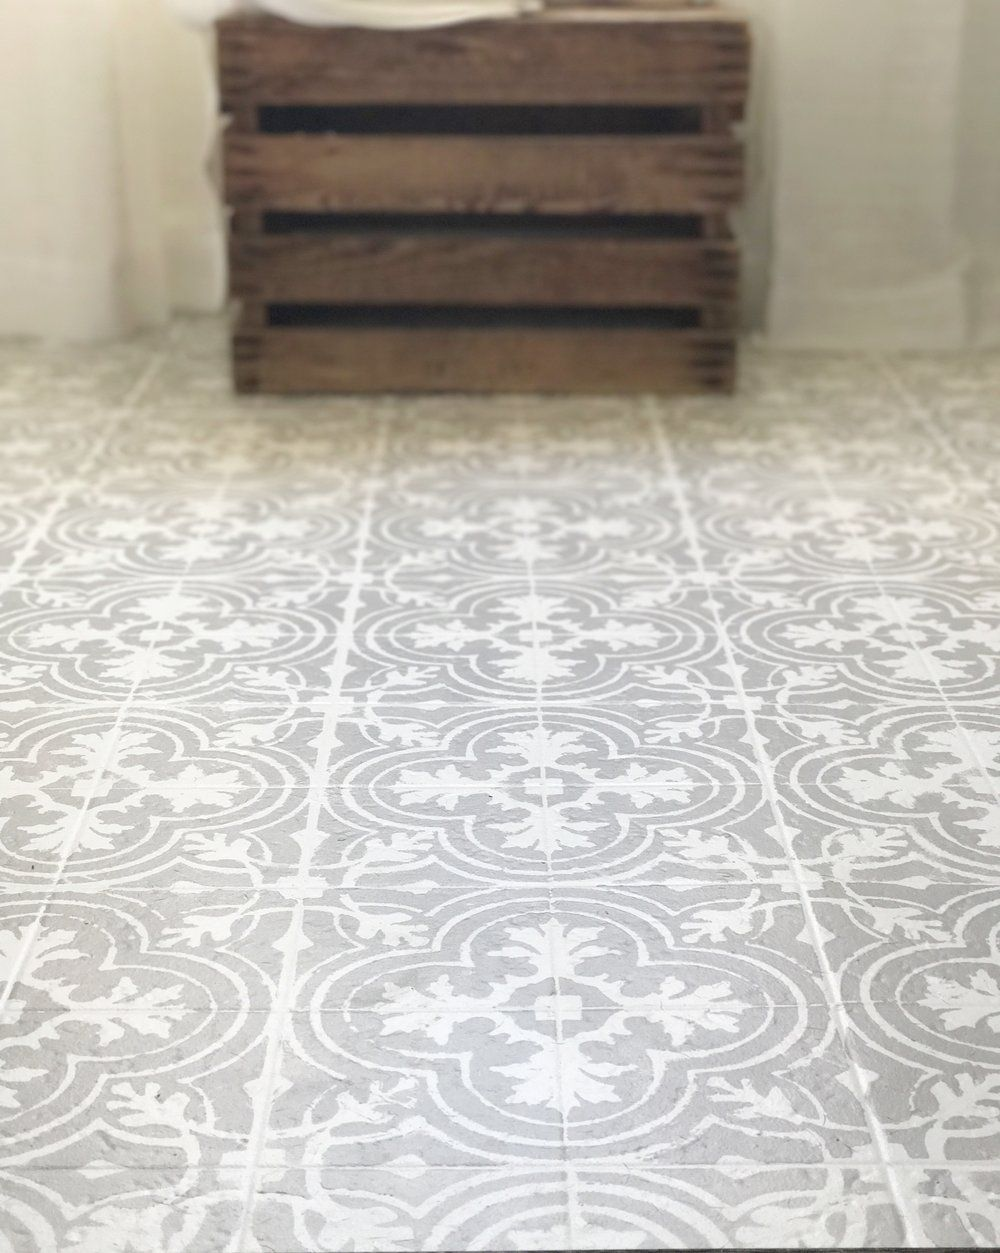 How to paint your linoleum or tile floors to look like patterned how to paint your linoleum or tile floors to look like patterned cement tile tutorial dailygadgetfo Choice Image